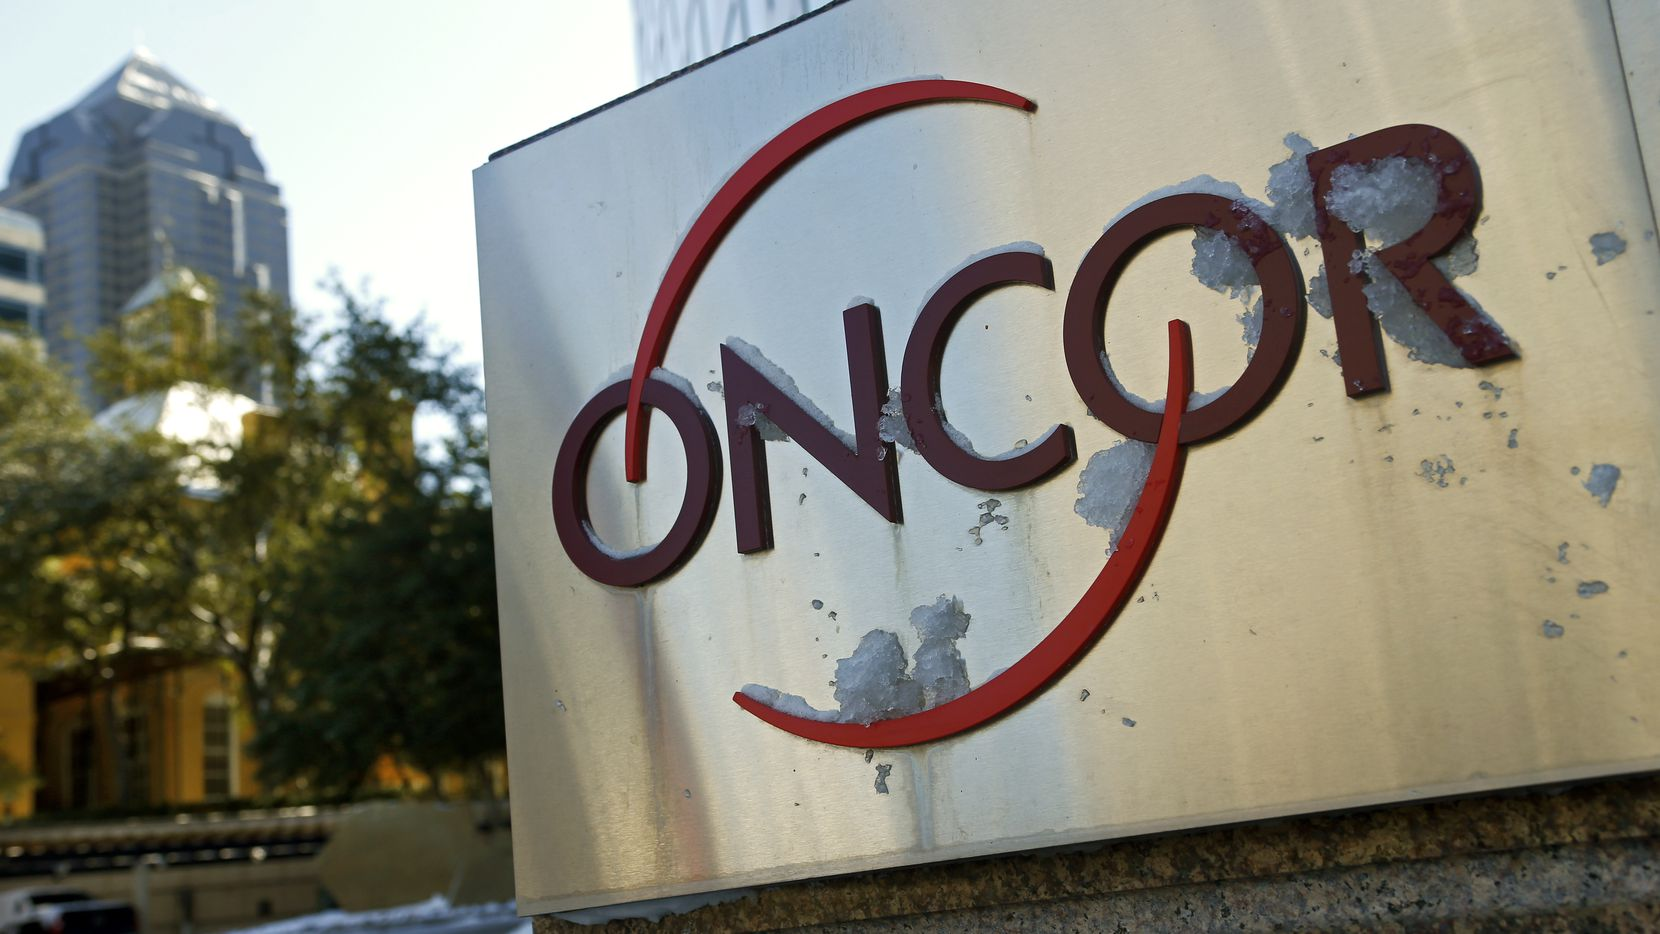 Energy Future Holdings appears poised to sell Oncor, its power transmission subsidiary, to Florida-based Next Era.